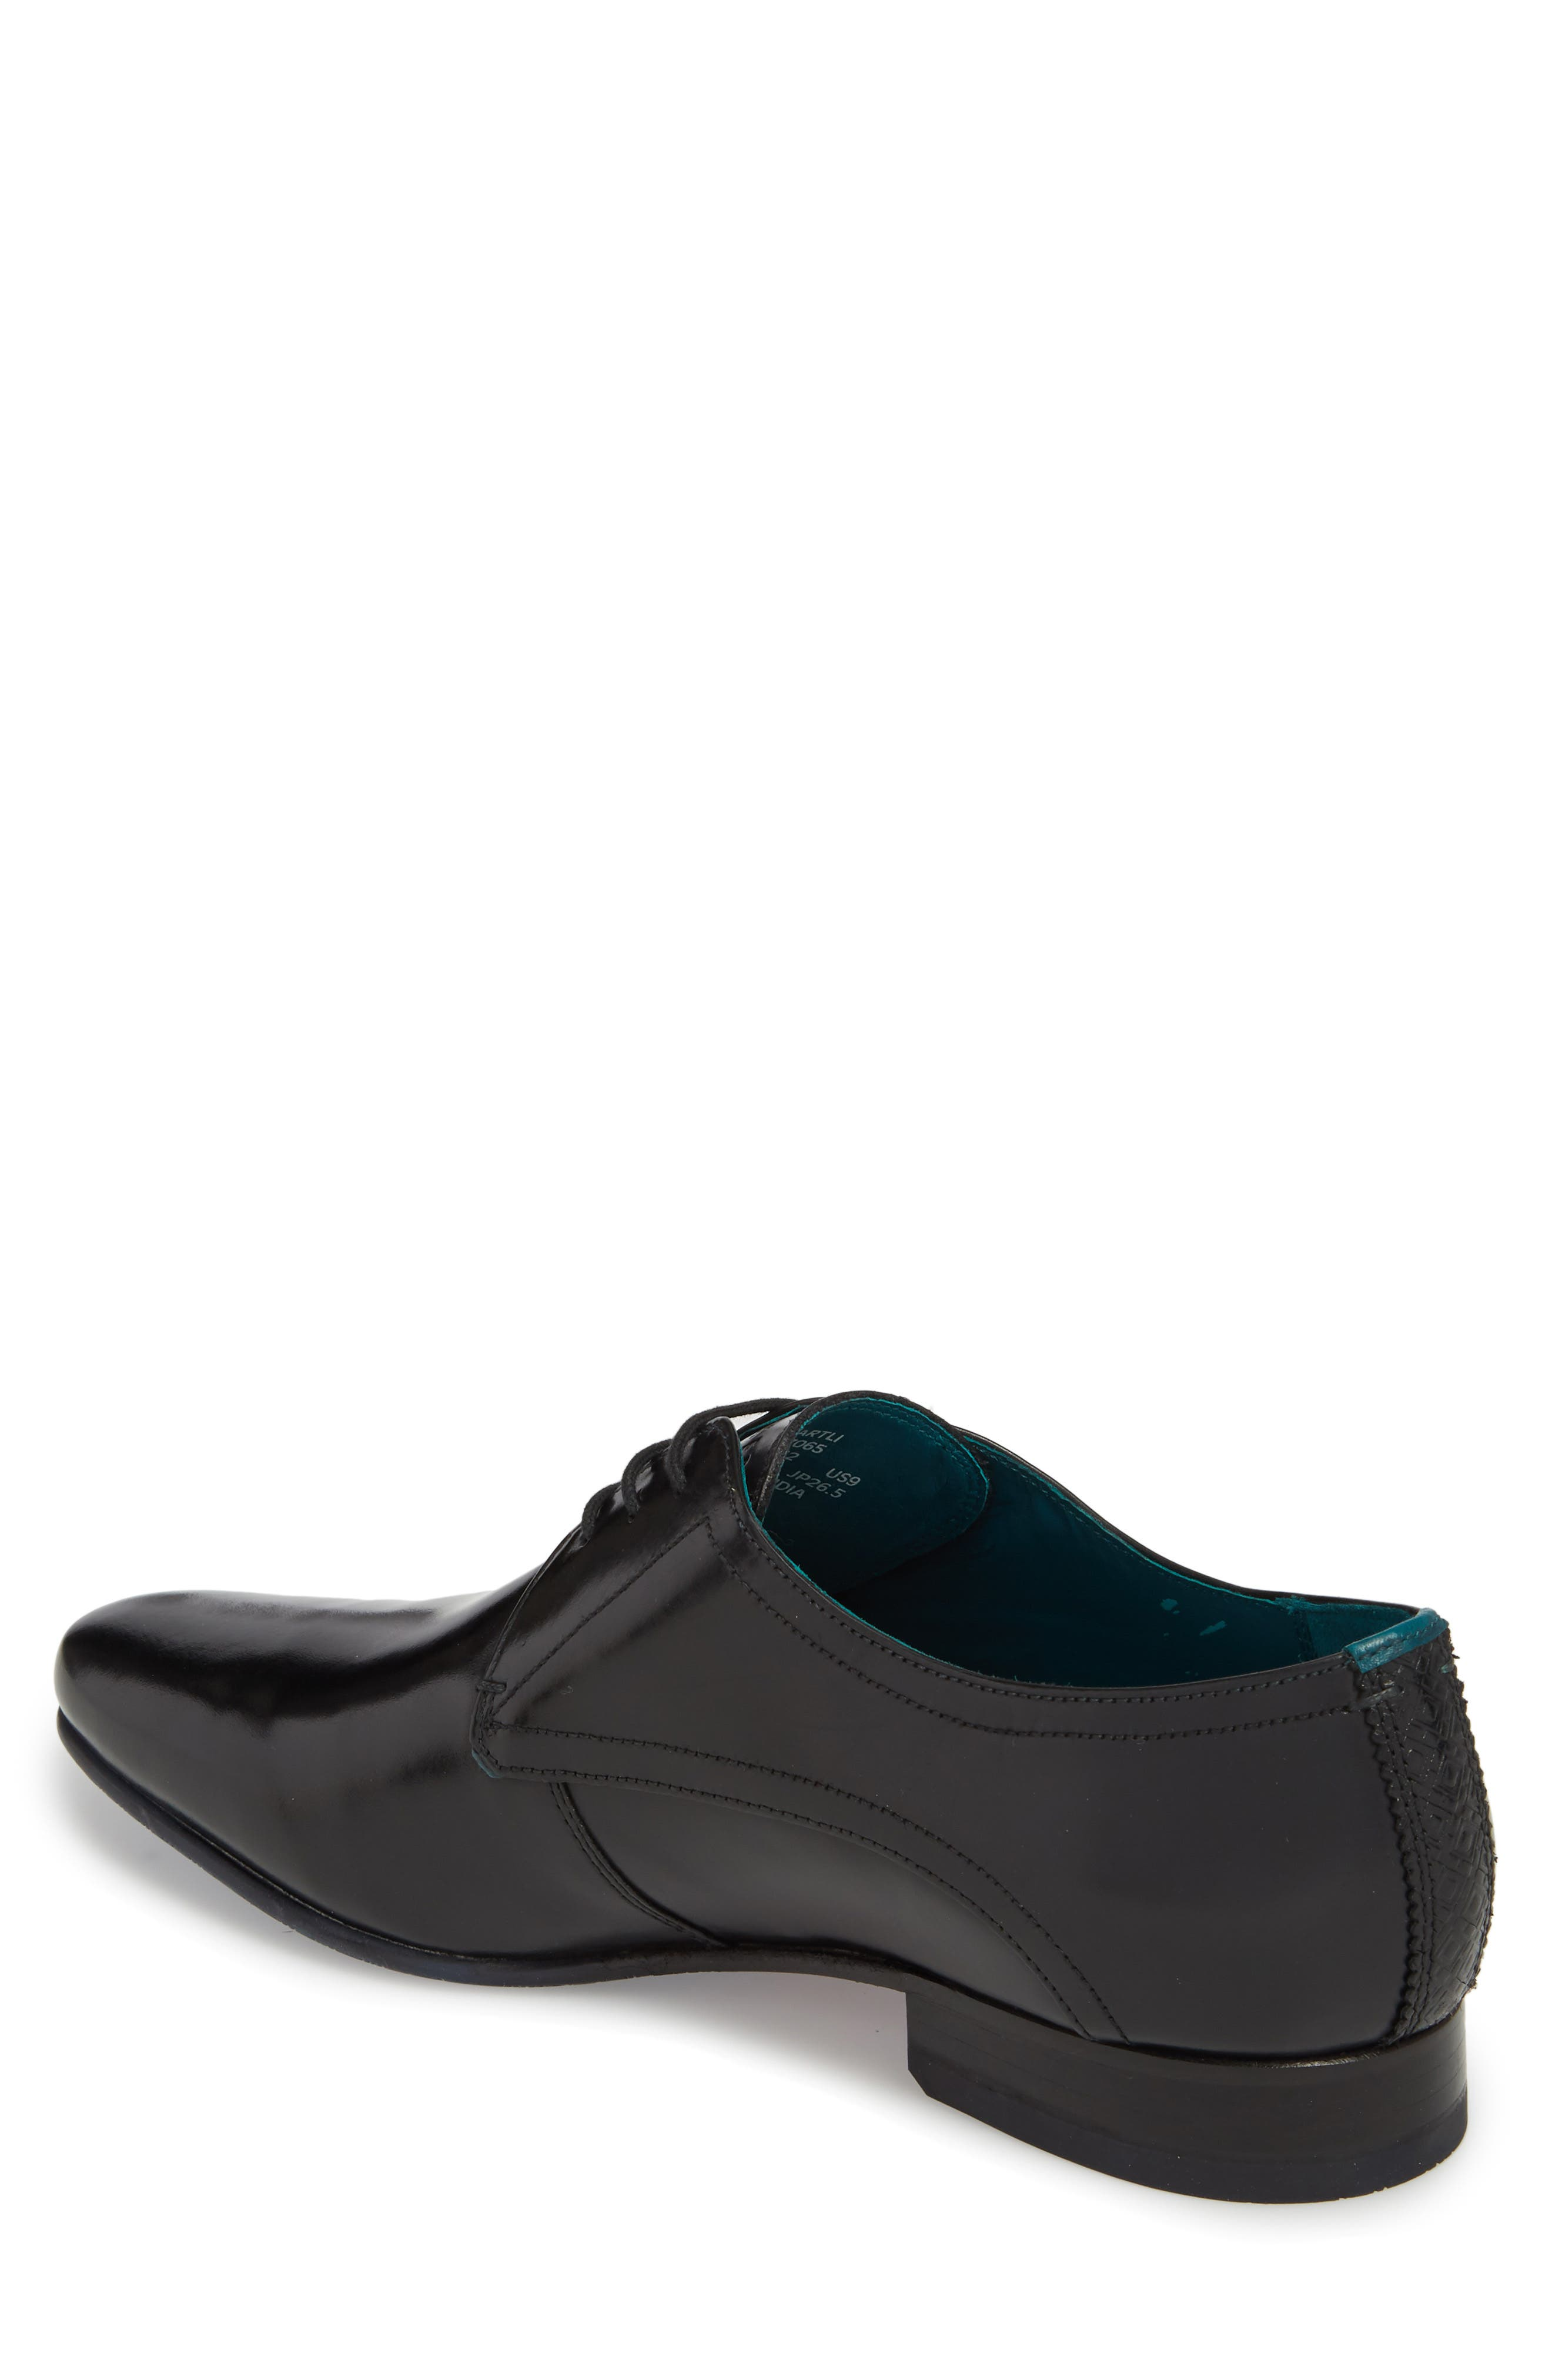 Bhartli Plain Toe Derby,                             Alternate thumbnail 2, color,                             BLACK LEATHER